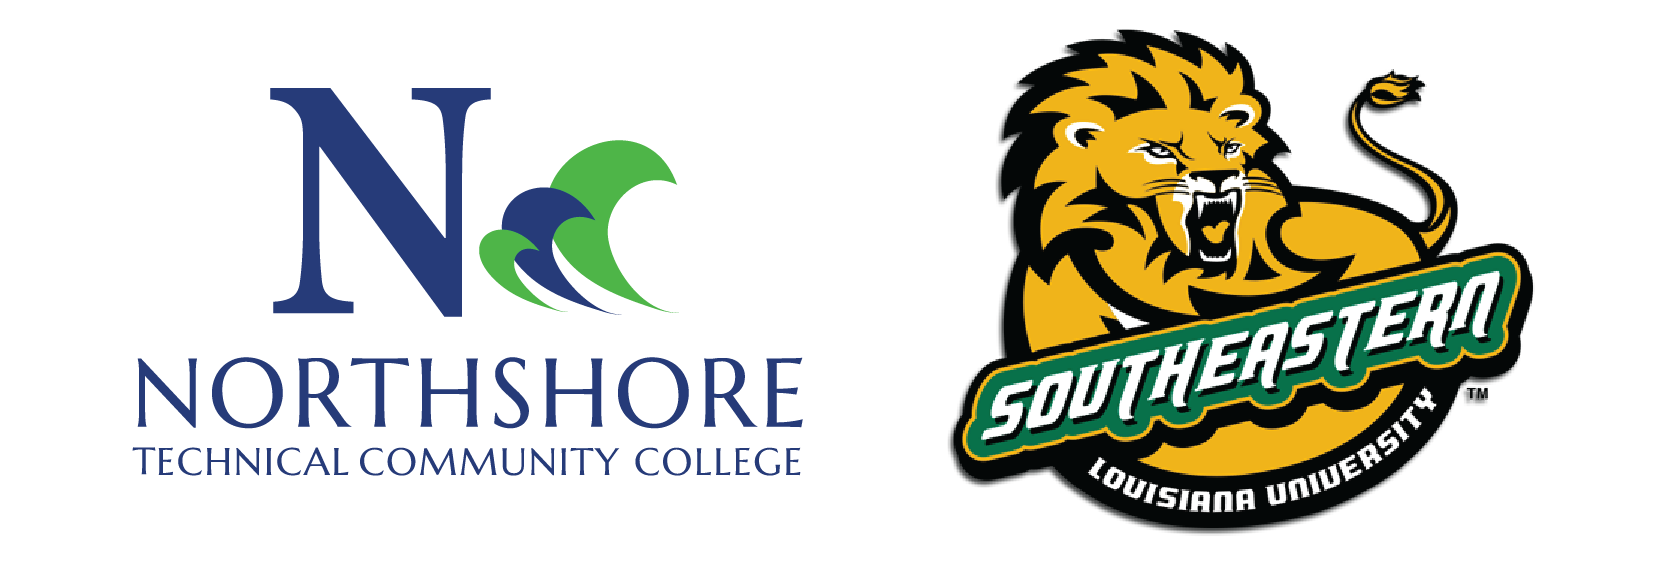 Northshore Technical Community College & Southeastern Louisiana University logos